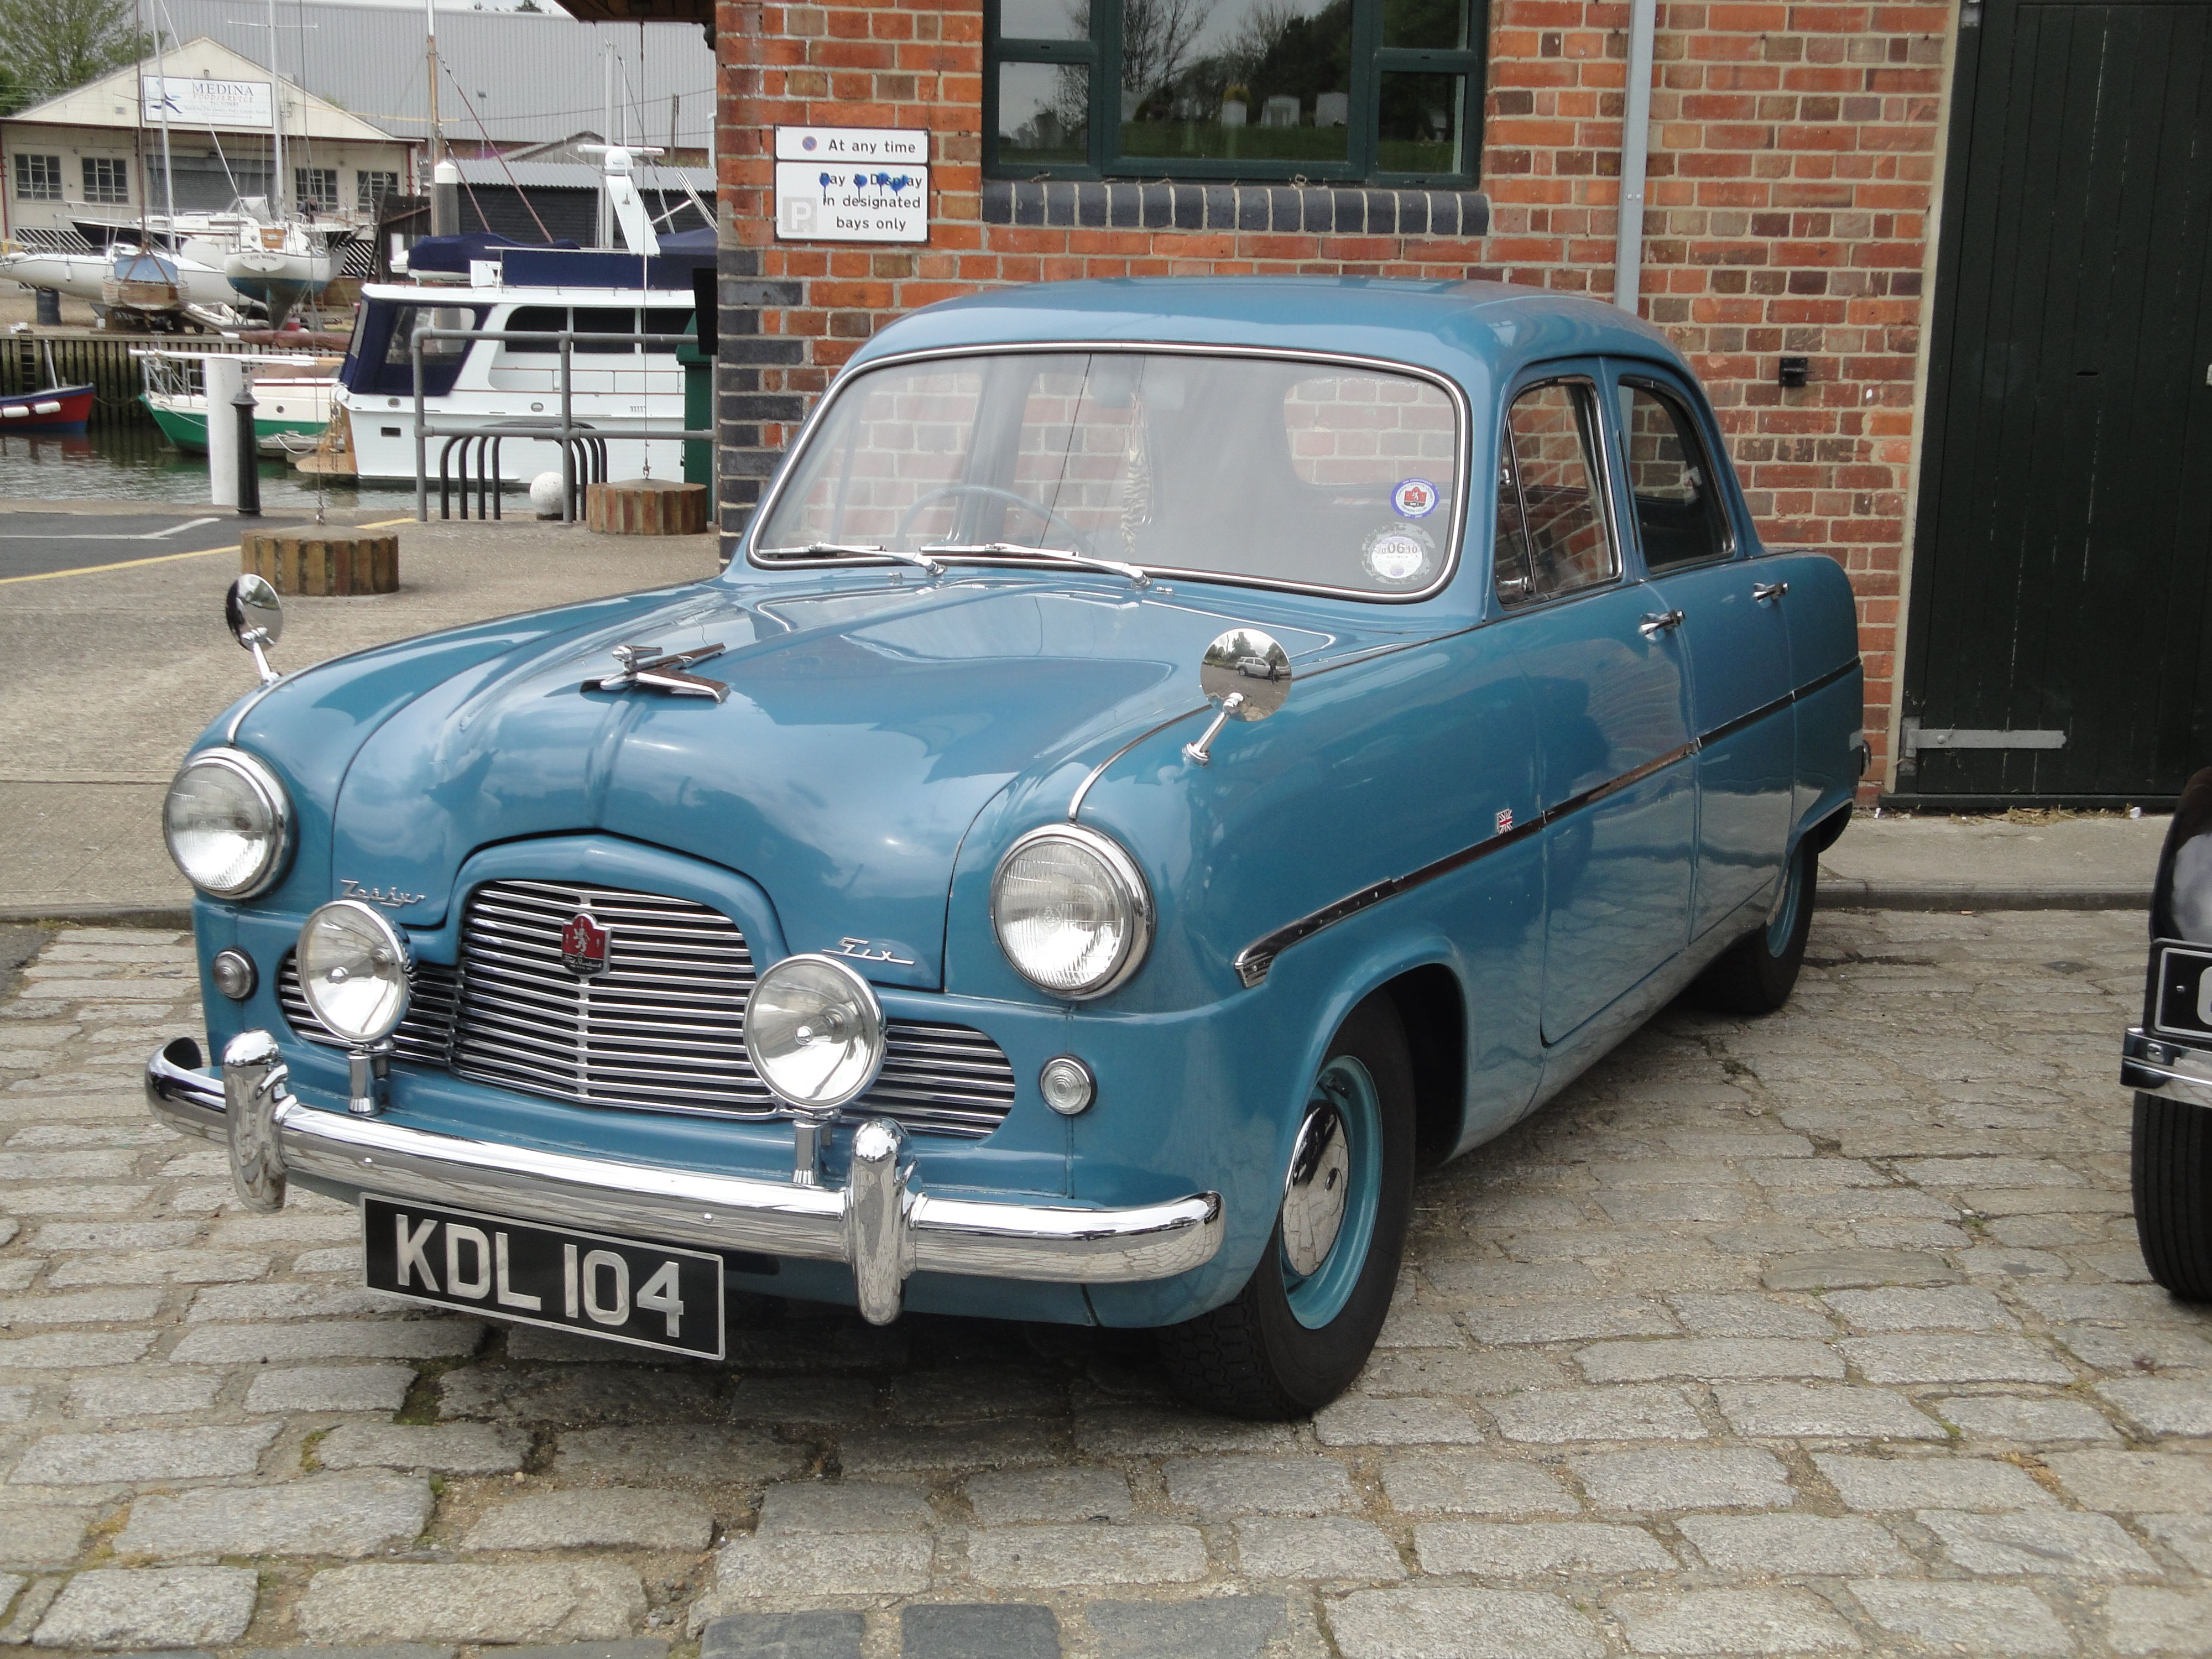 Top Old Car | Big Budget Items | Pinterest | Cars and Car images